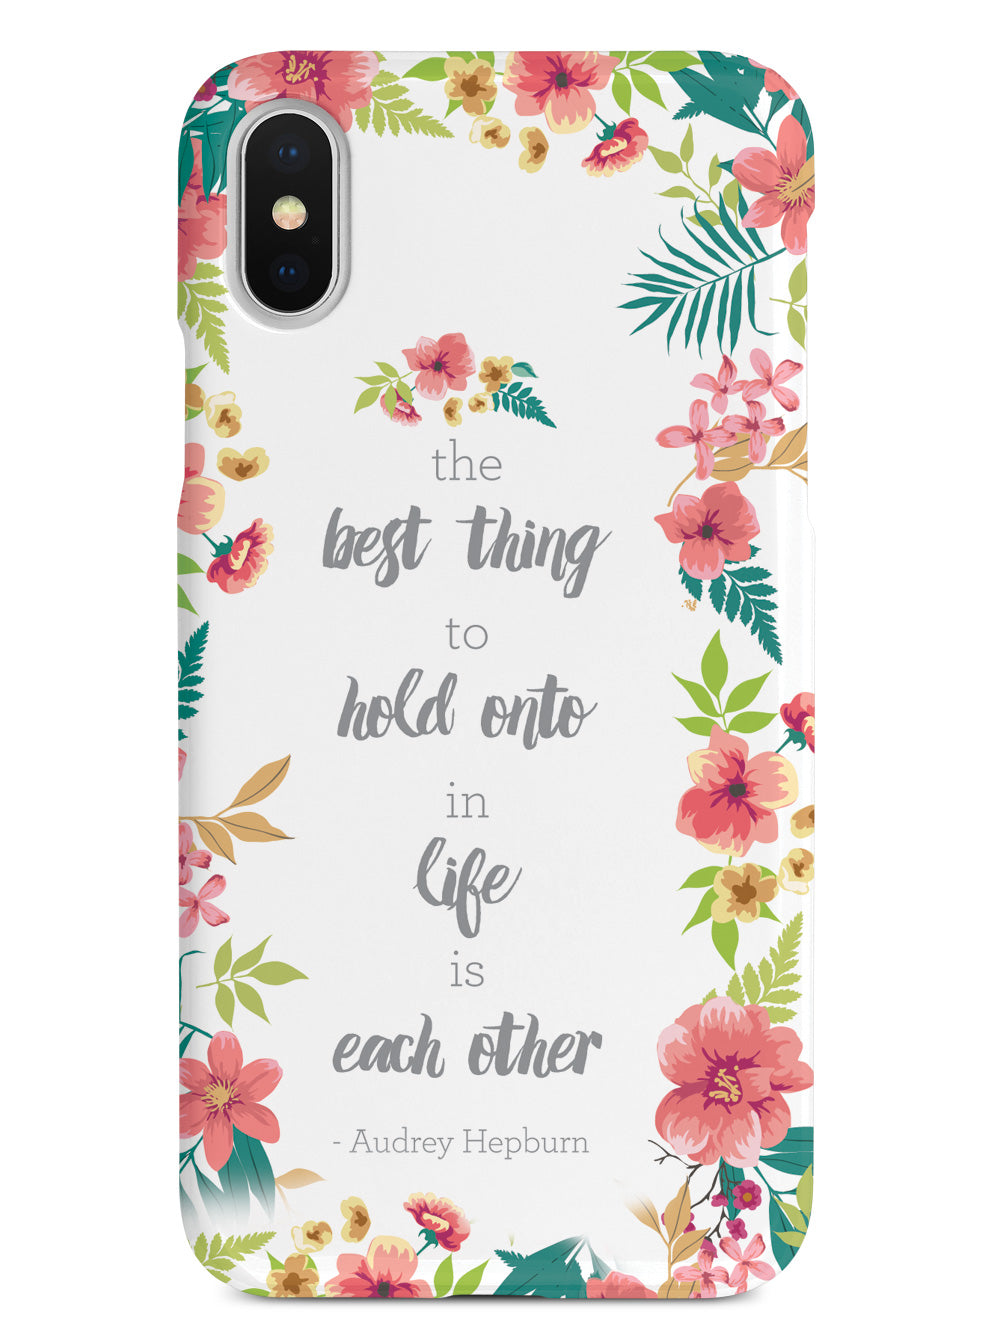 The Best Thing In Life - Audrey Hepburn Case